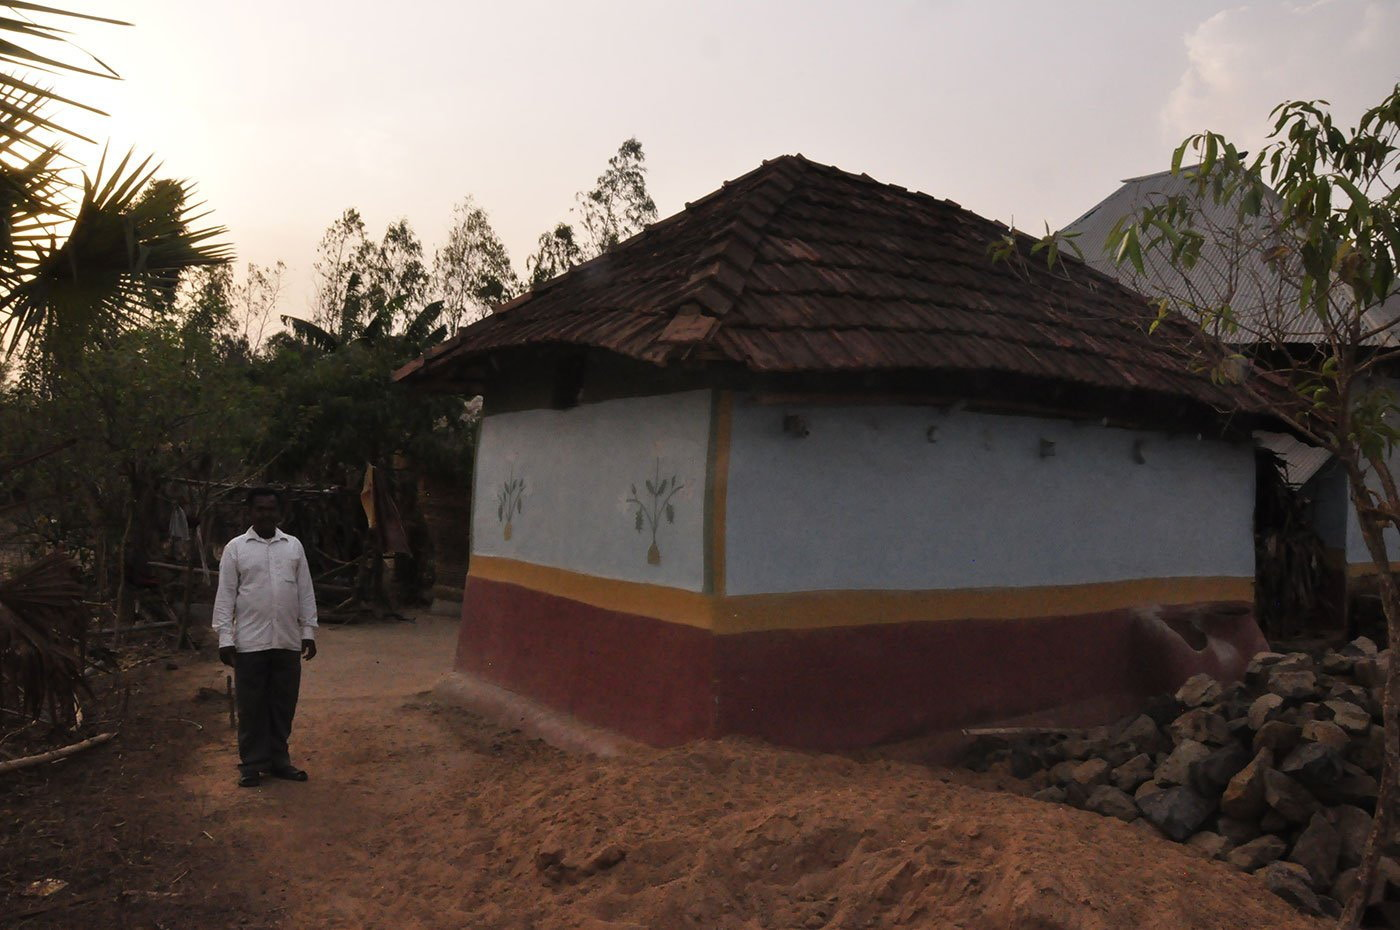 01-Nalhati-qc-048-MM-Bamli's House.jpg